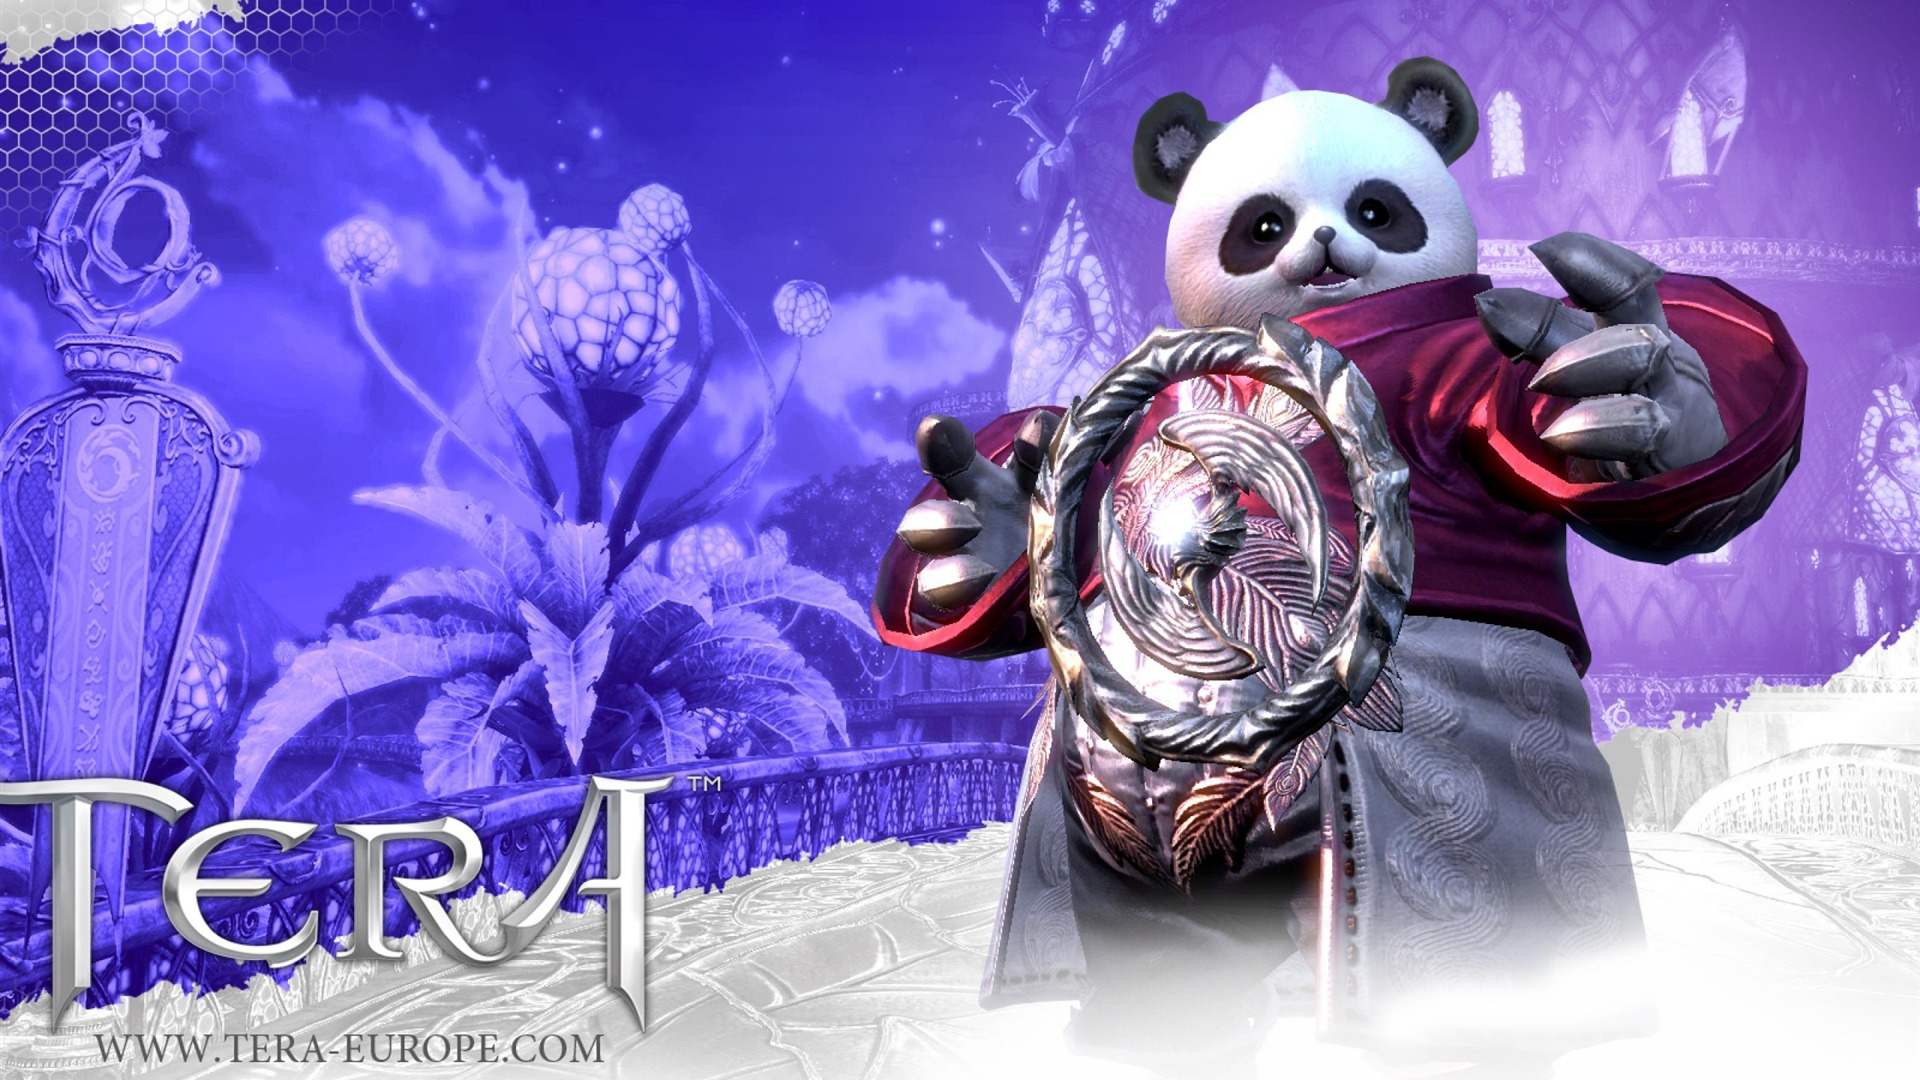 Tera Game Hd Wallpaper 14 Avance 10wallpapercom